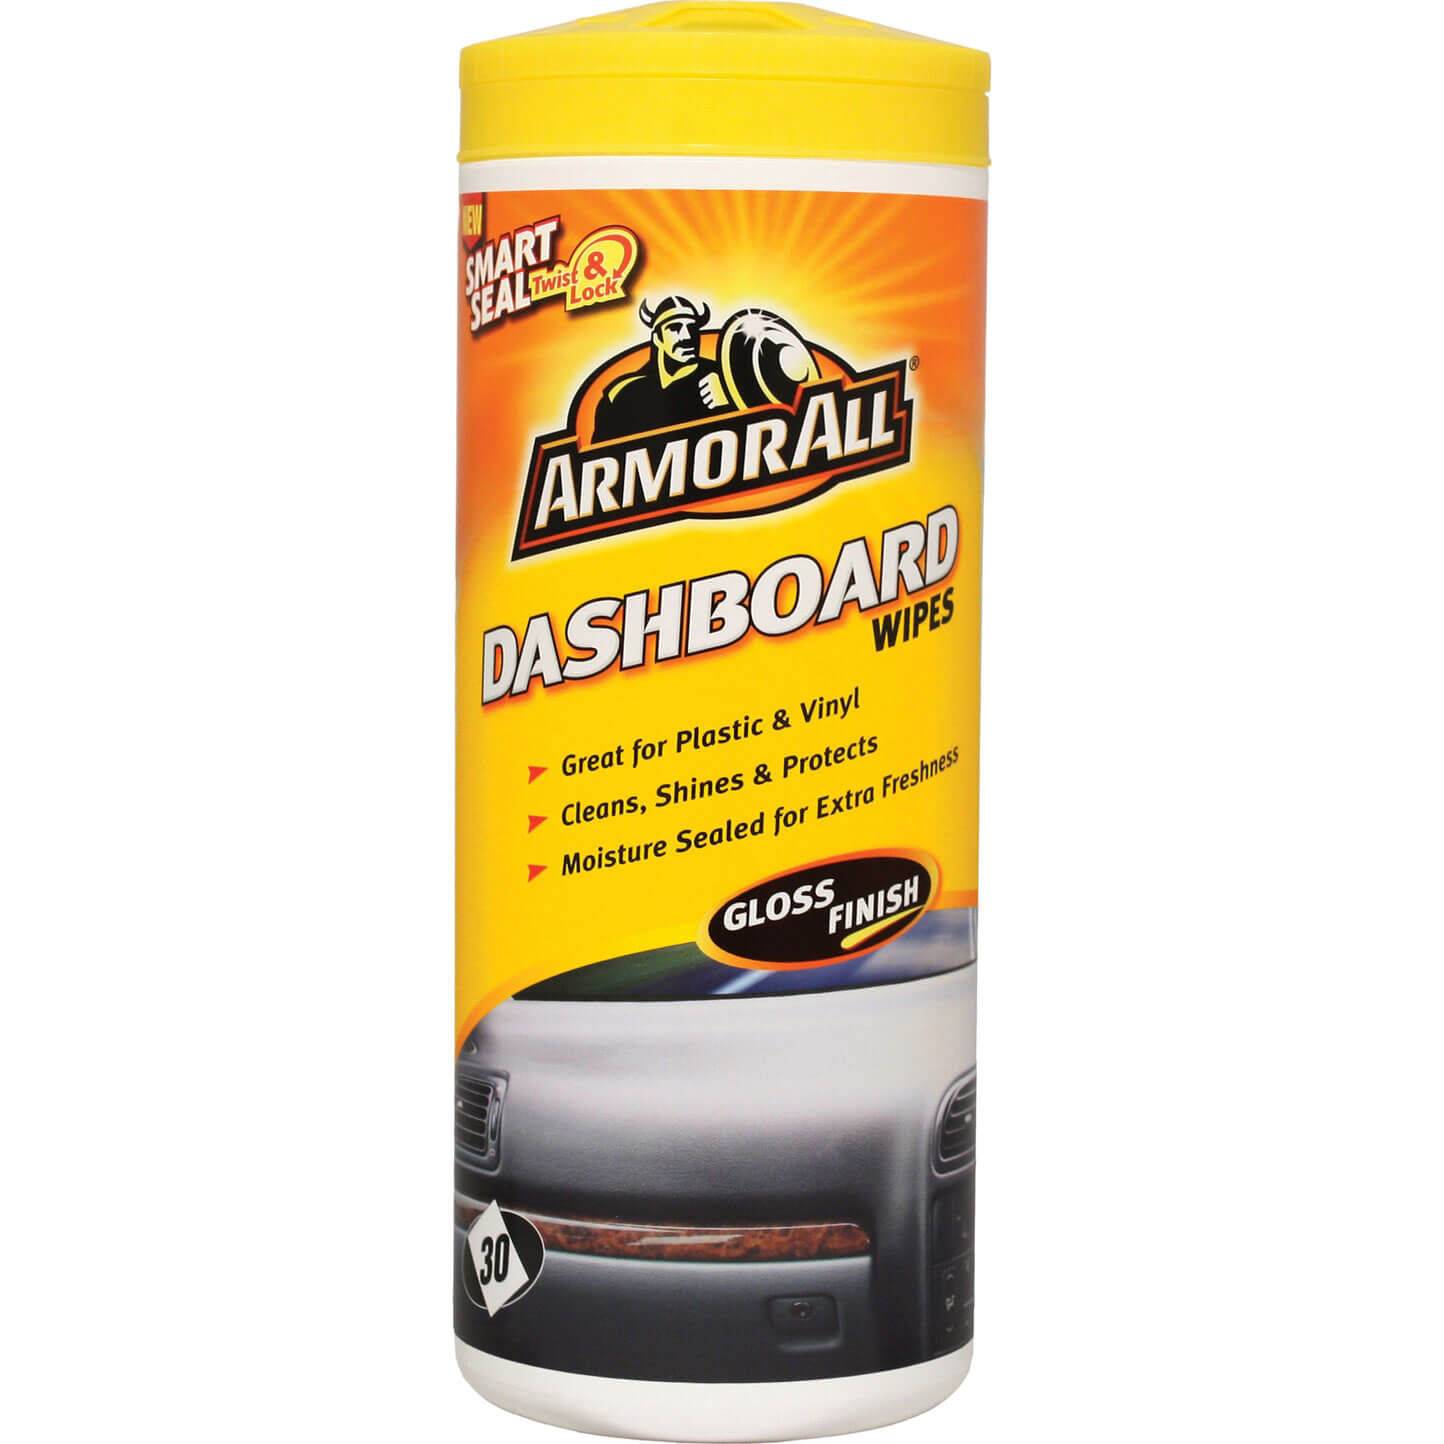 armorall interior car dashboard wipes. Black Bedroom Furniture Sets. Home Design Ideas